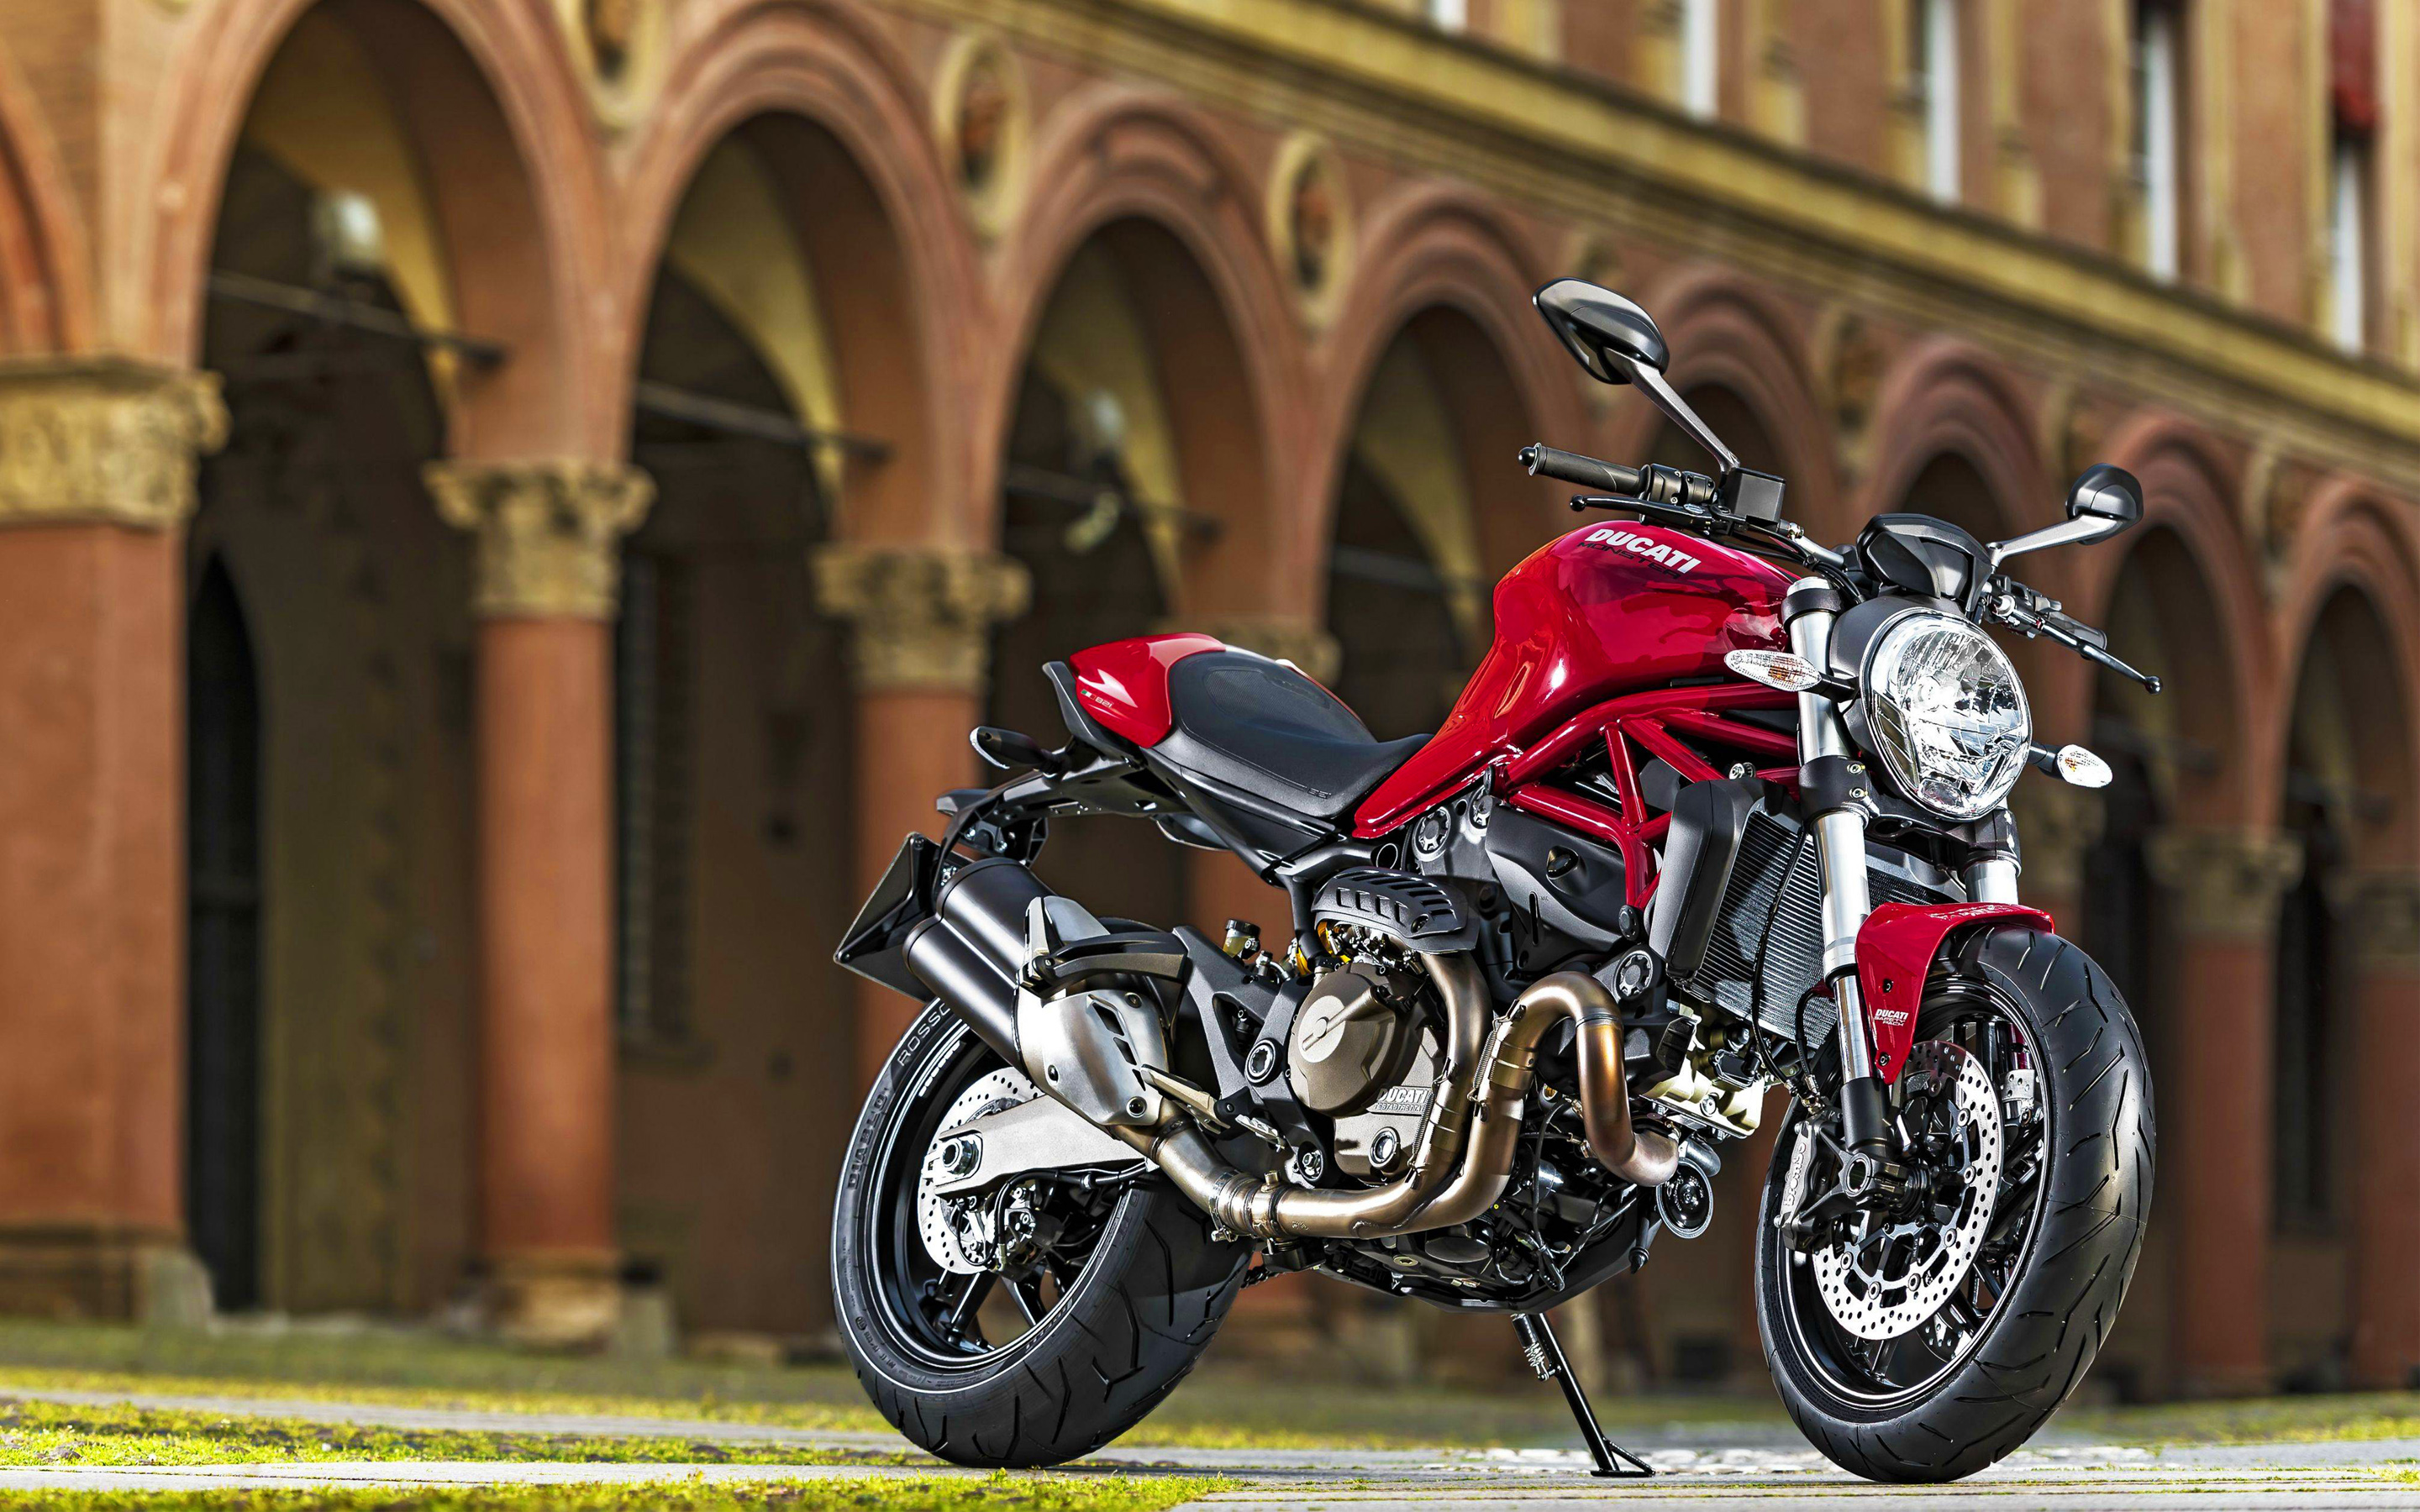 2015 Ducati Monster 821 225.69 Kb